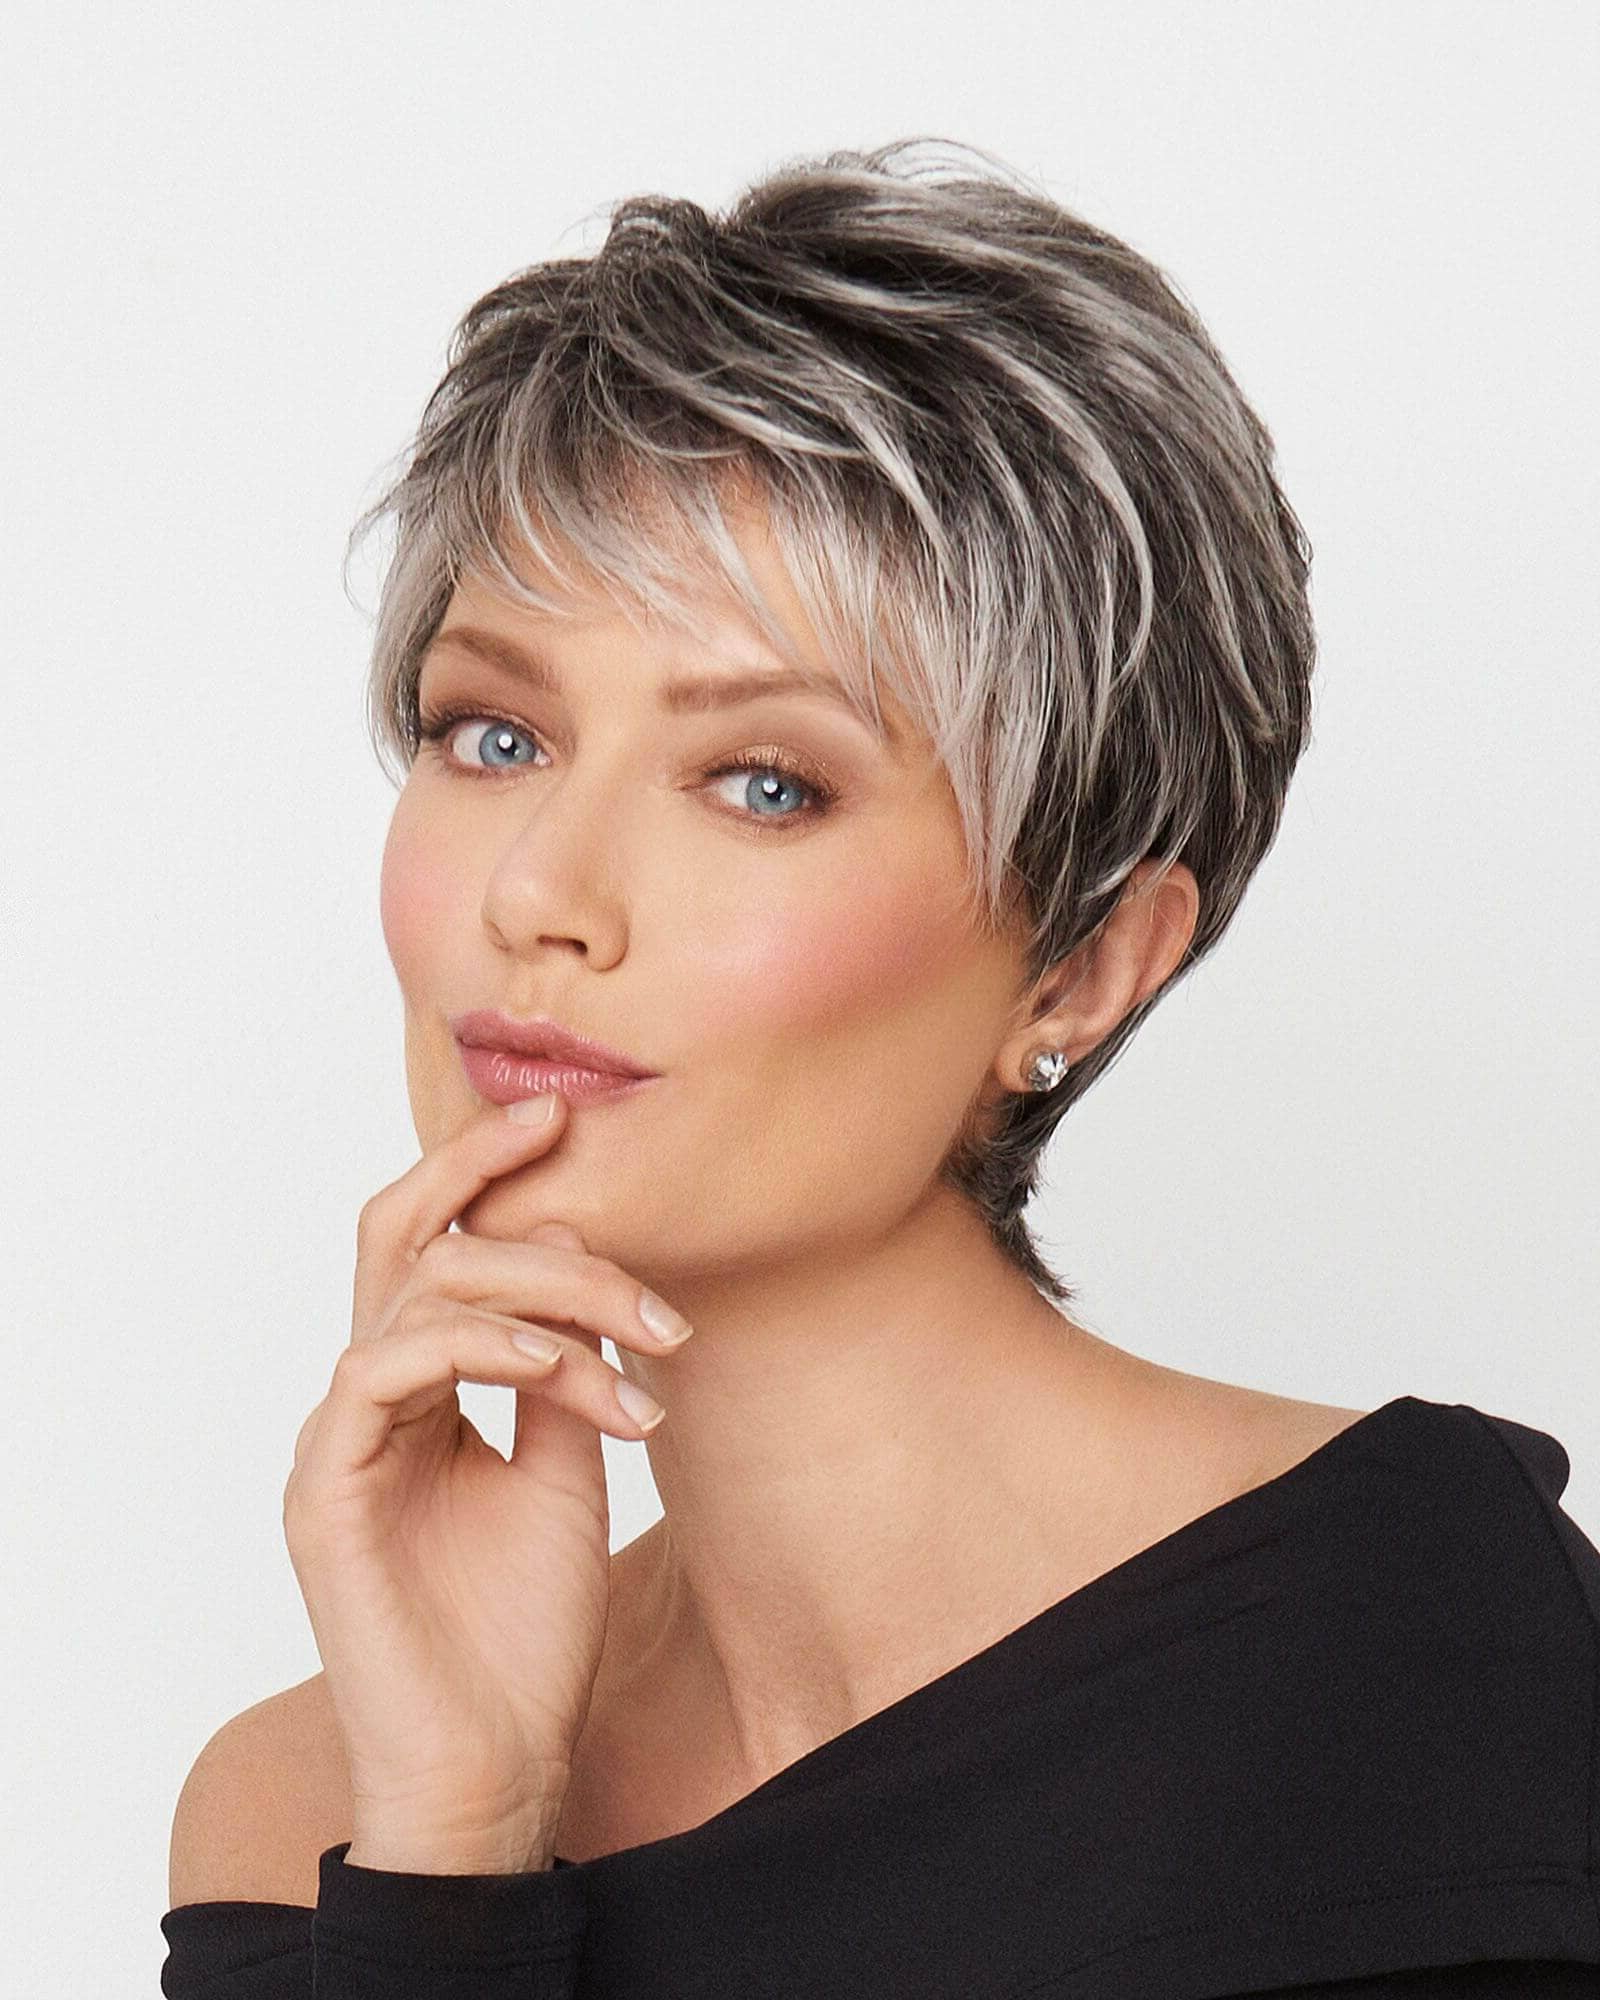 50 Pixie Haircuts You'll See Trending In 2018 For Messy Pixie Hairstyles For Short Hair (View 8 of 20)